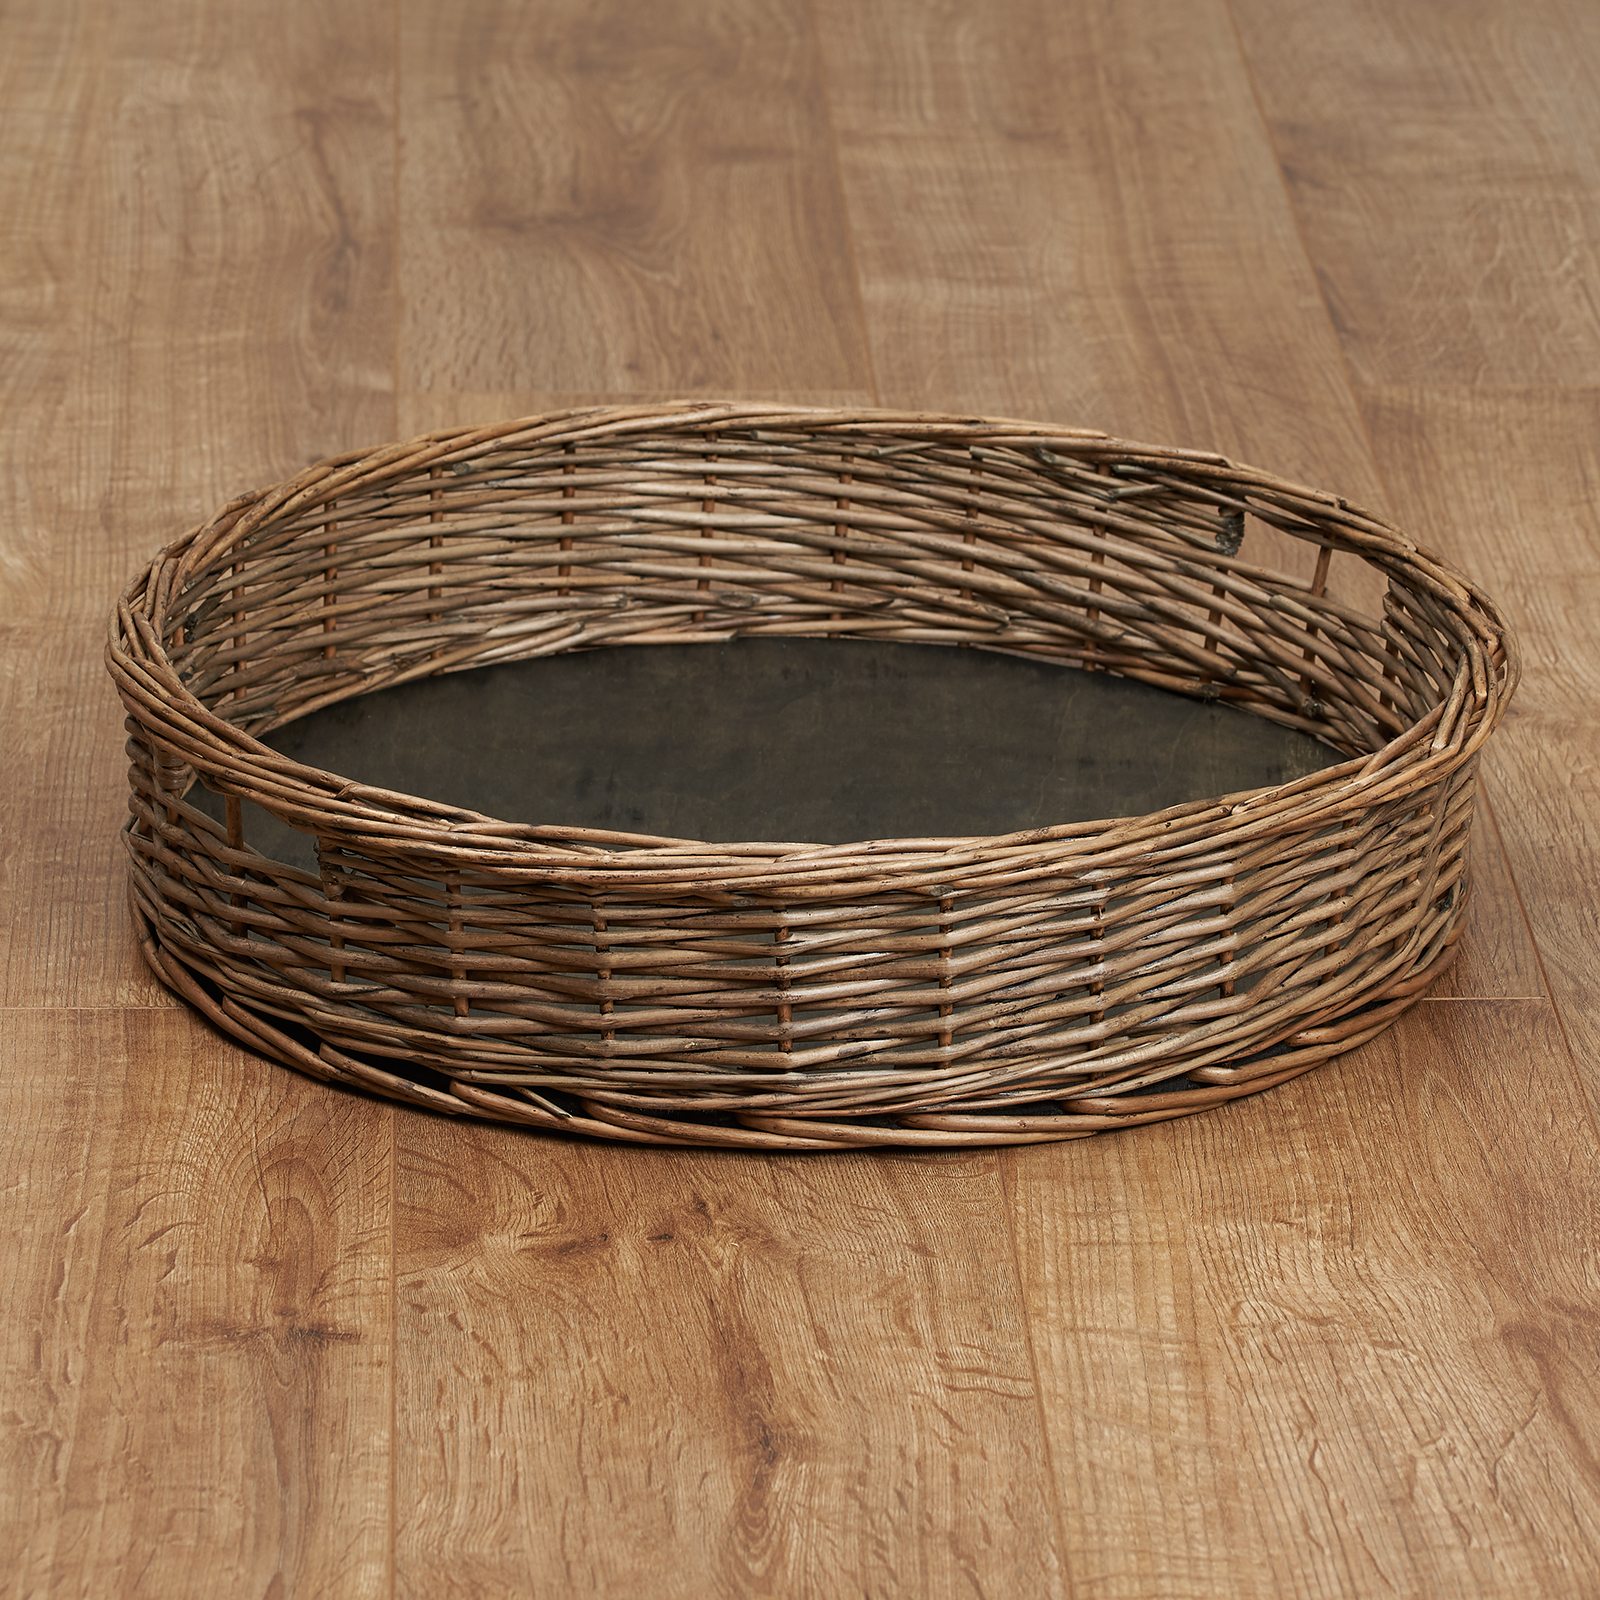 Hartleys-Round-Wicker-Serving-Tray-Decorative-Wooden-Platter-Coffee-Table-Decor thumbnail 21